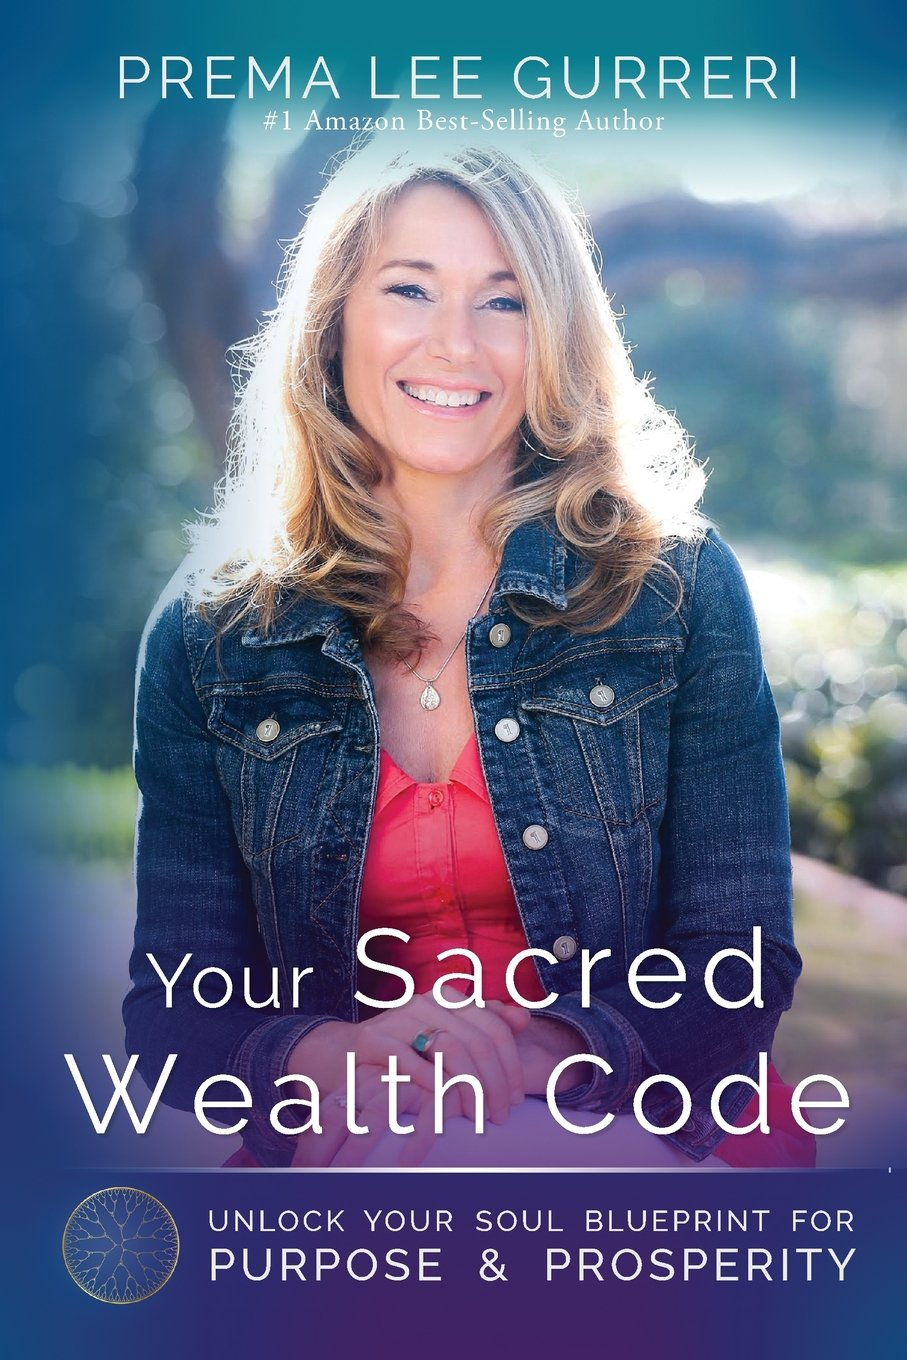 Your Sacred Wealth Code: Unlock Your Soul Blueprint for Purpose